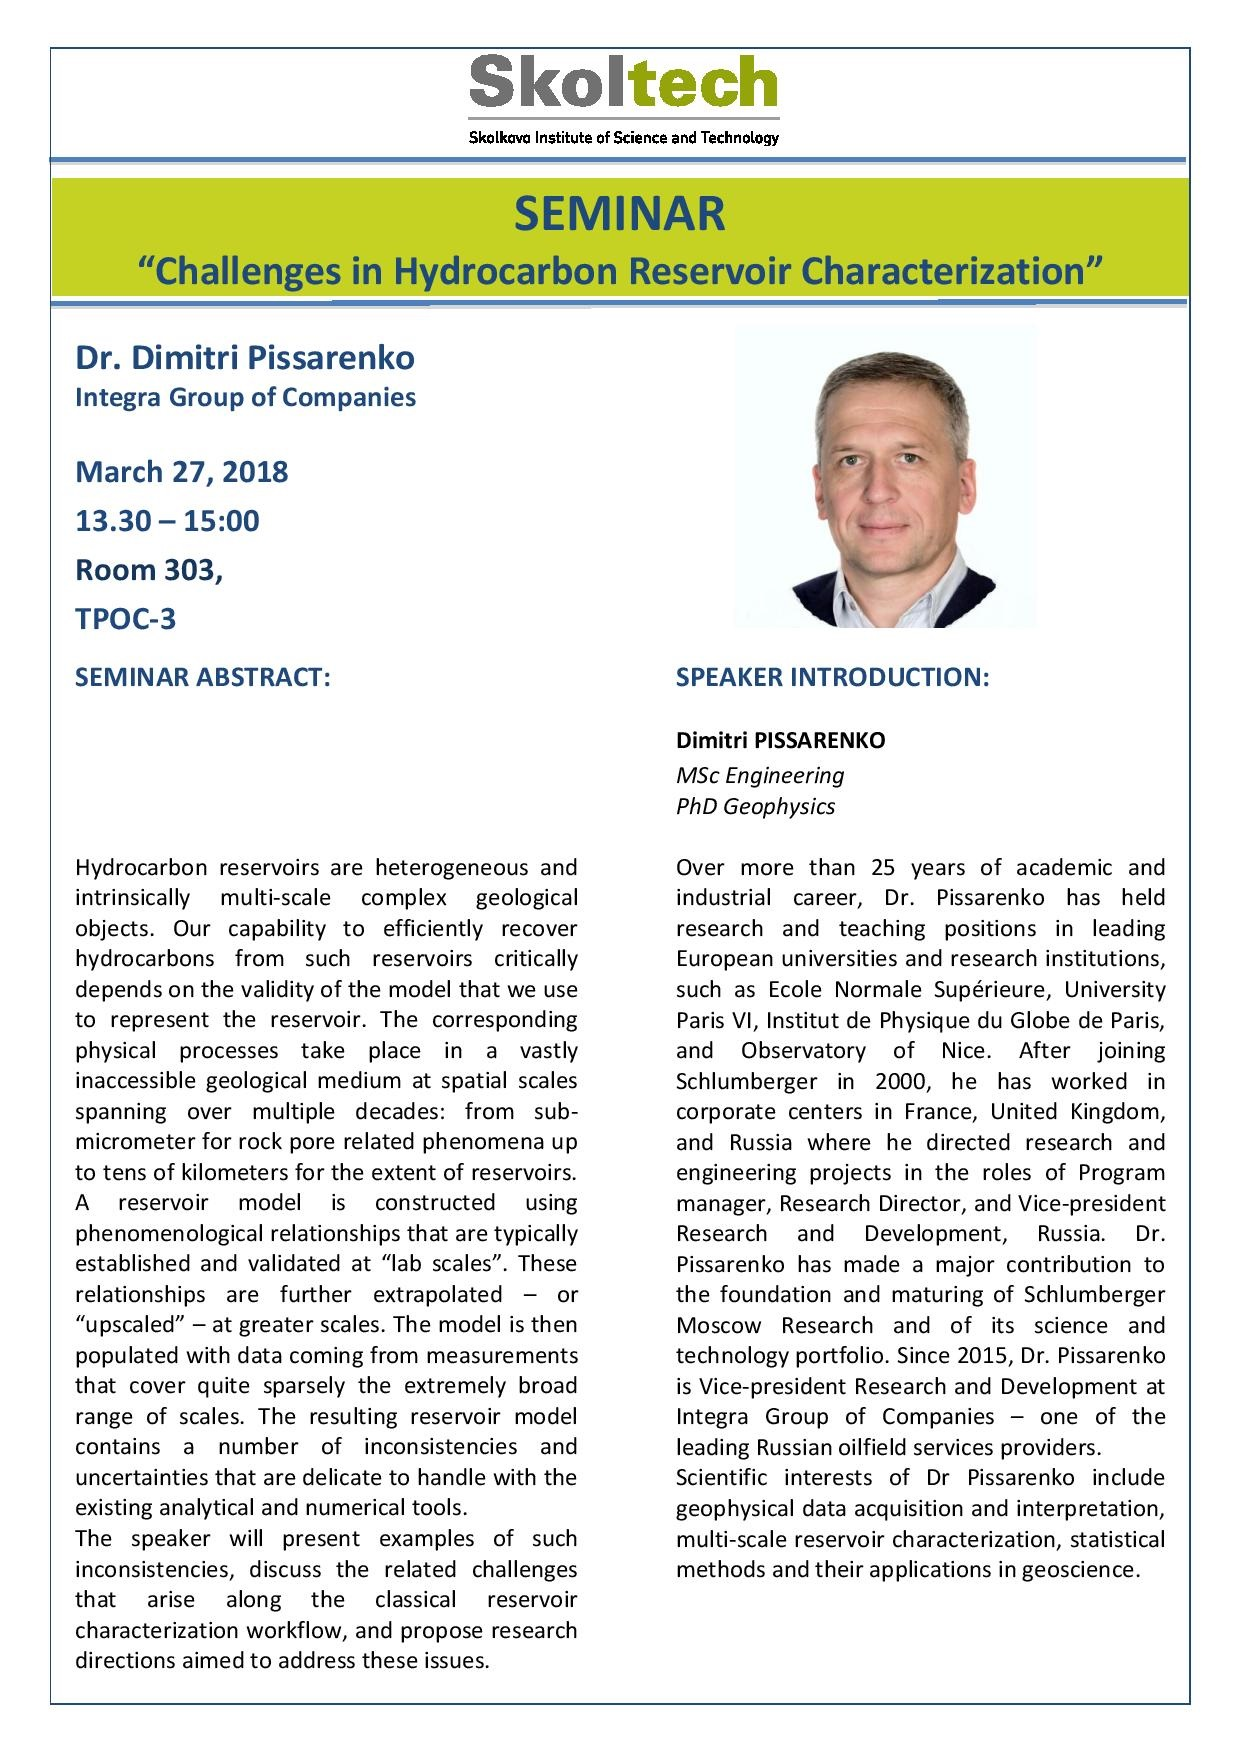 seminar-challenges-in-hydrocarbon-reservoir-characterization